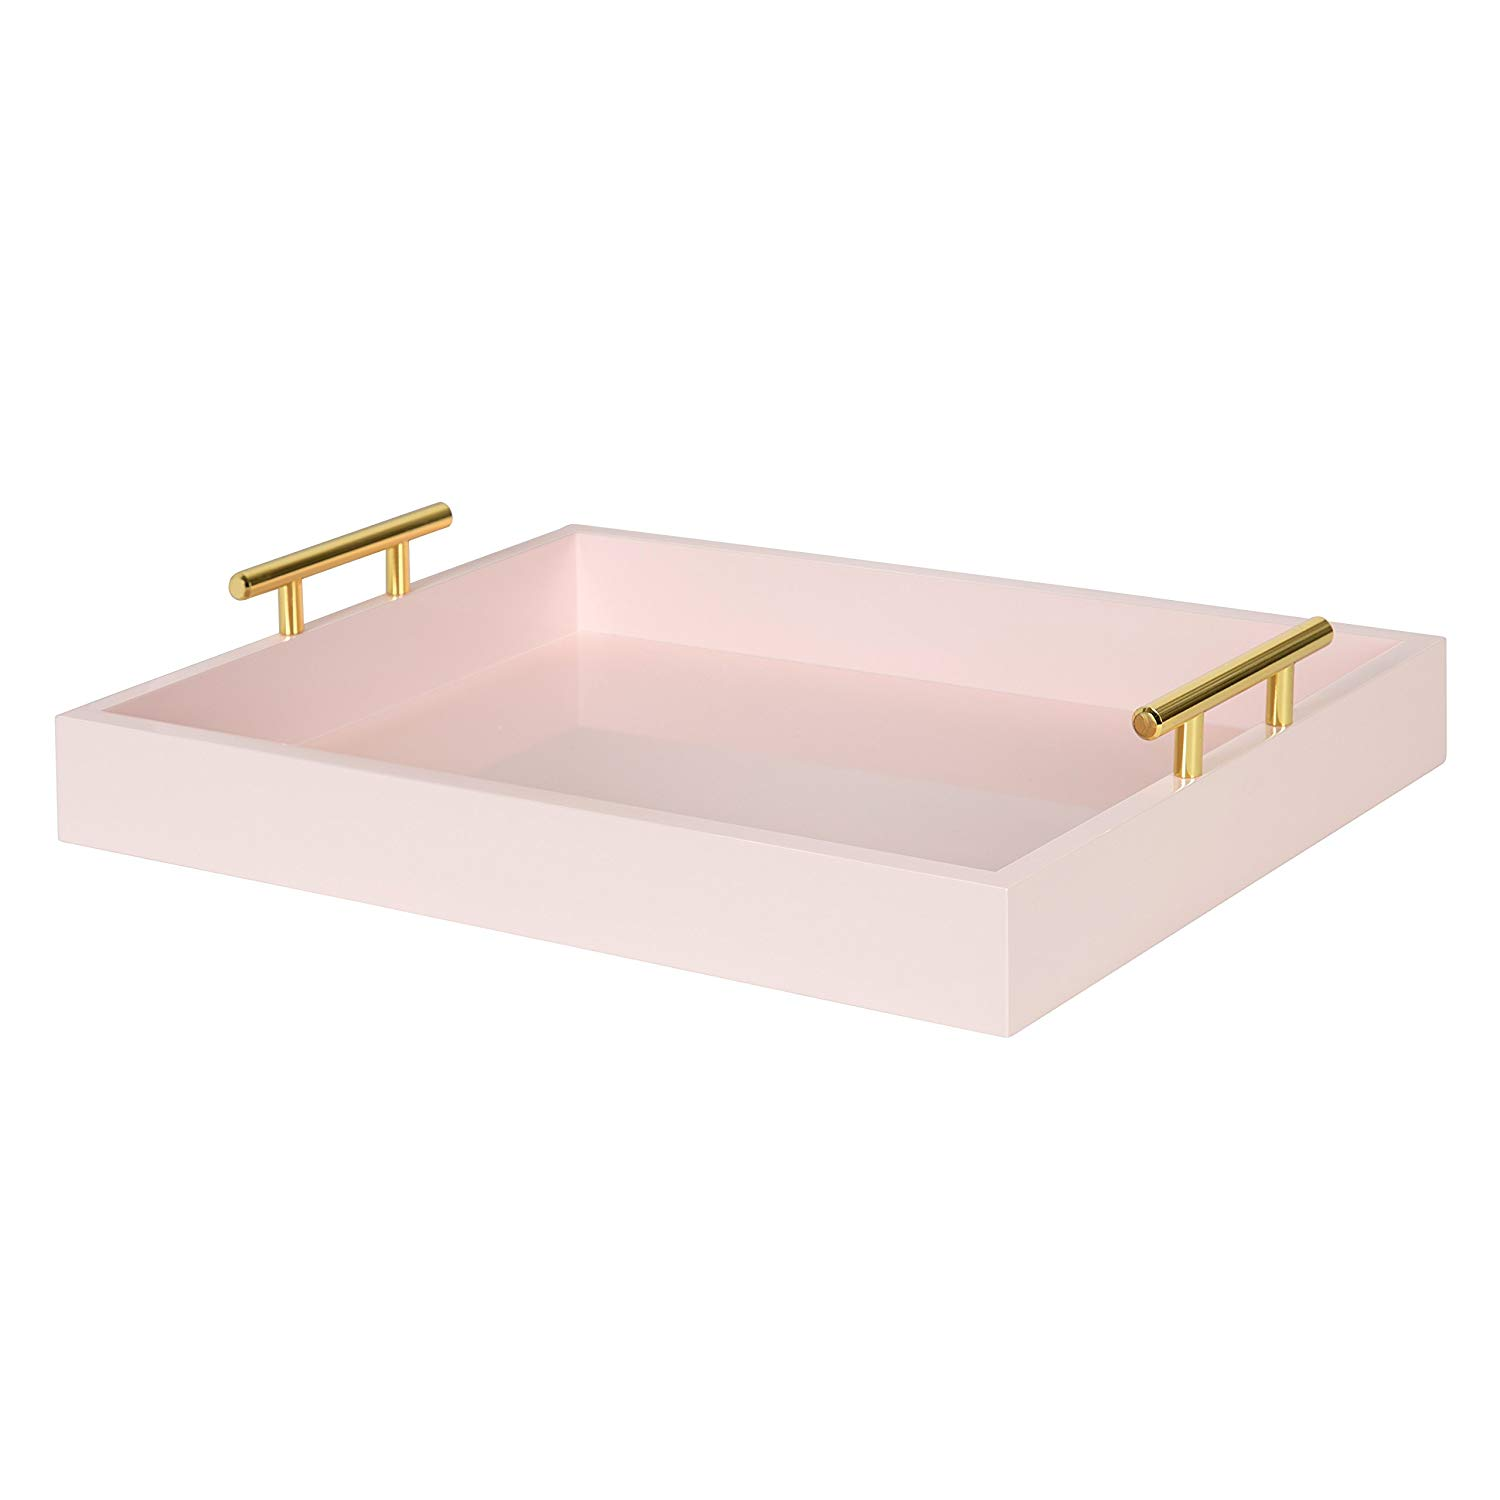 Pink tray with gold handles